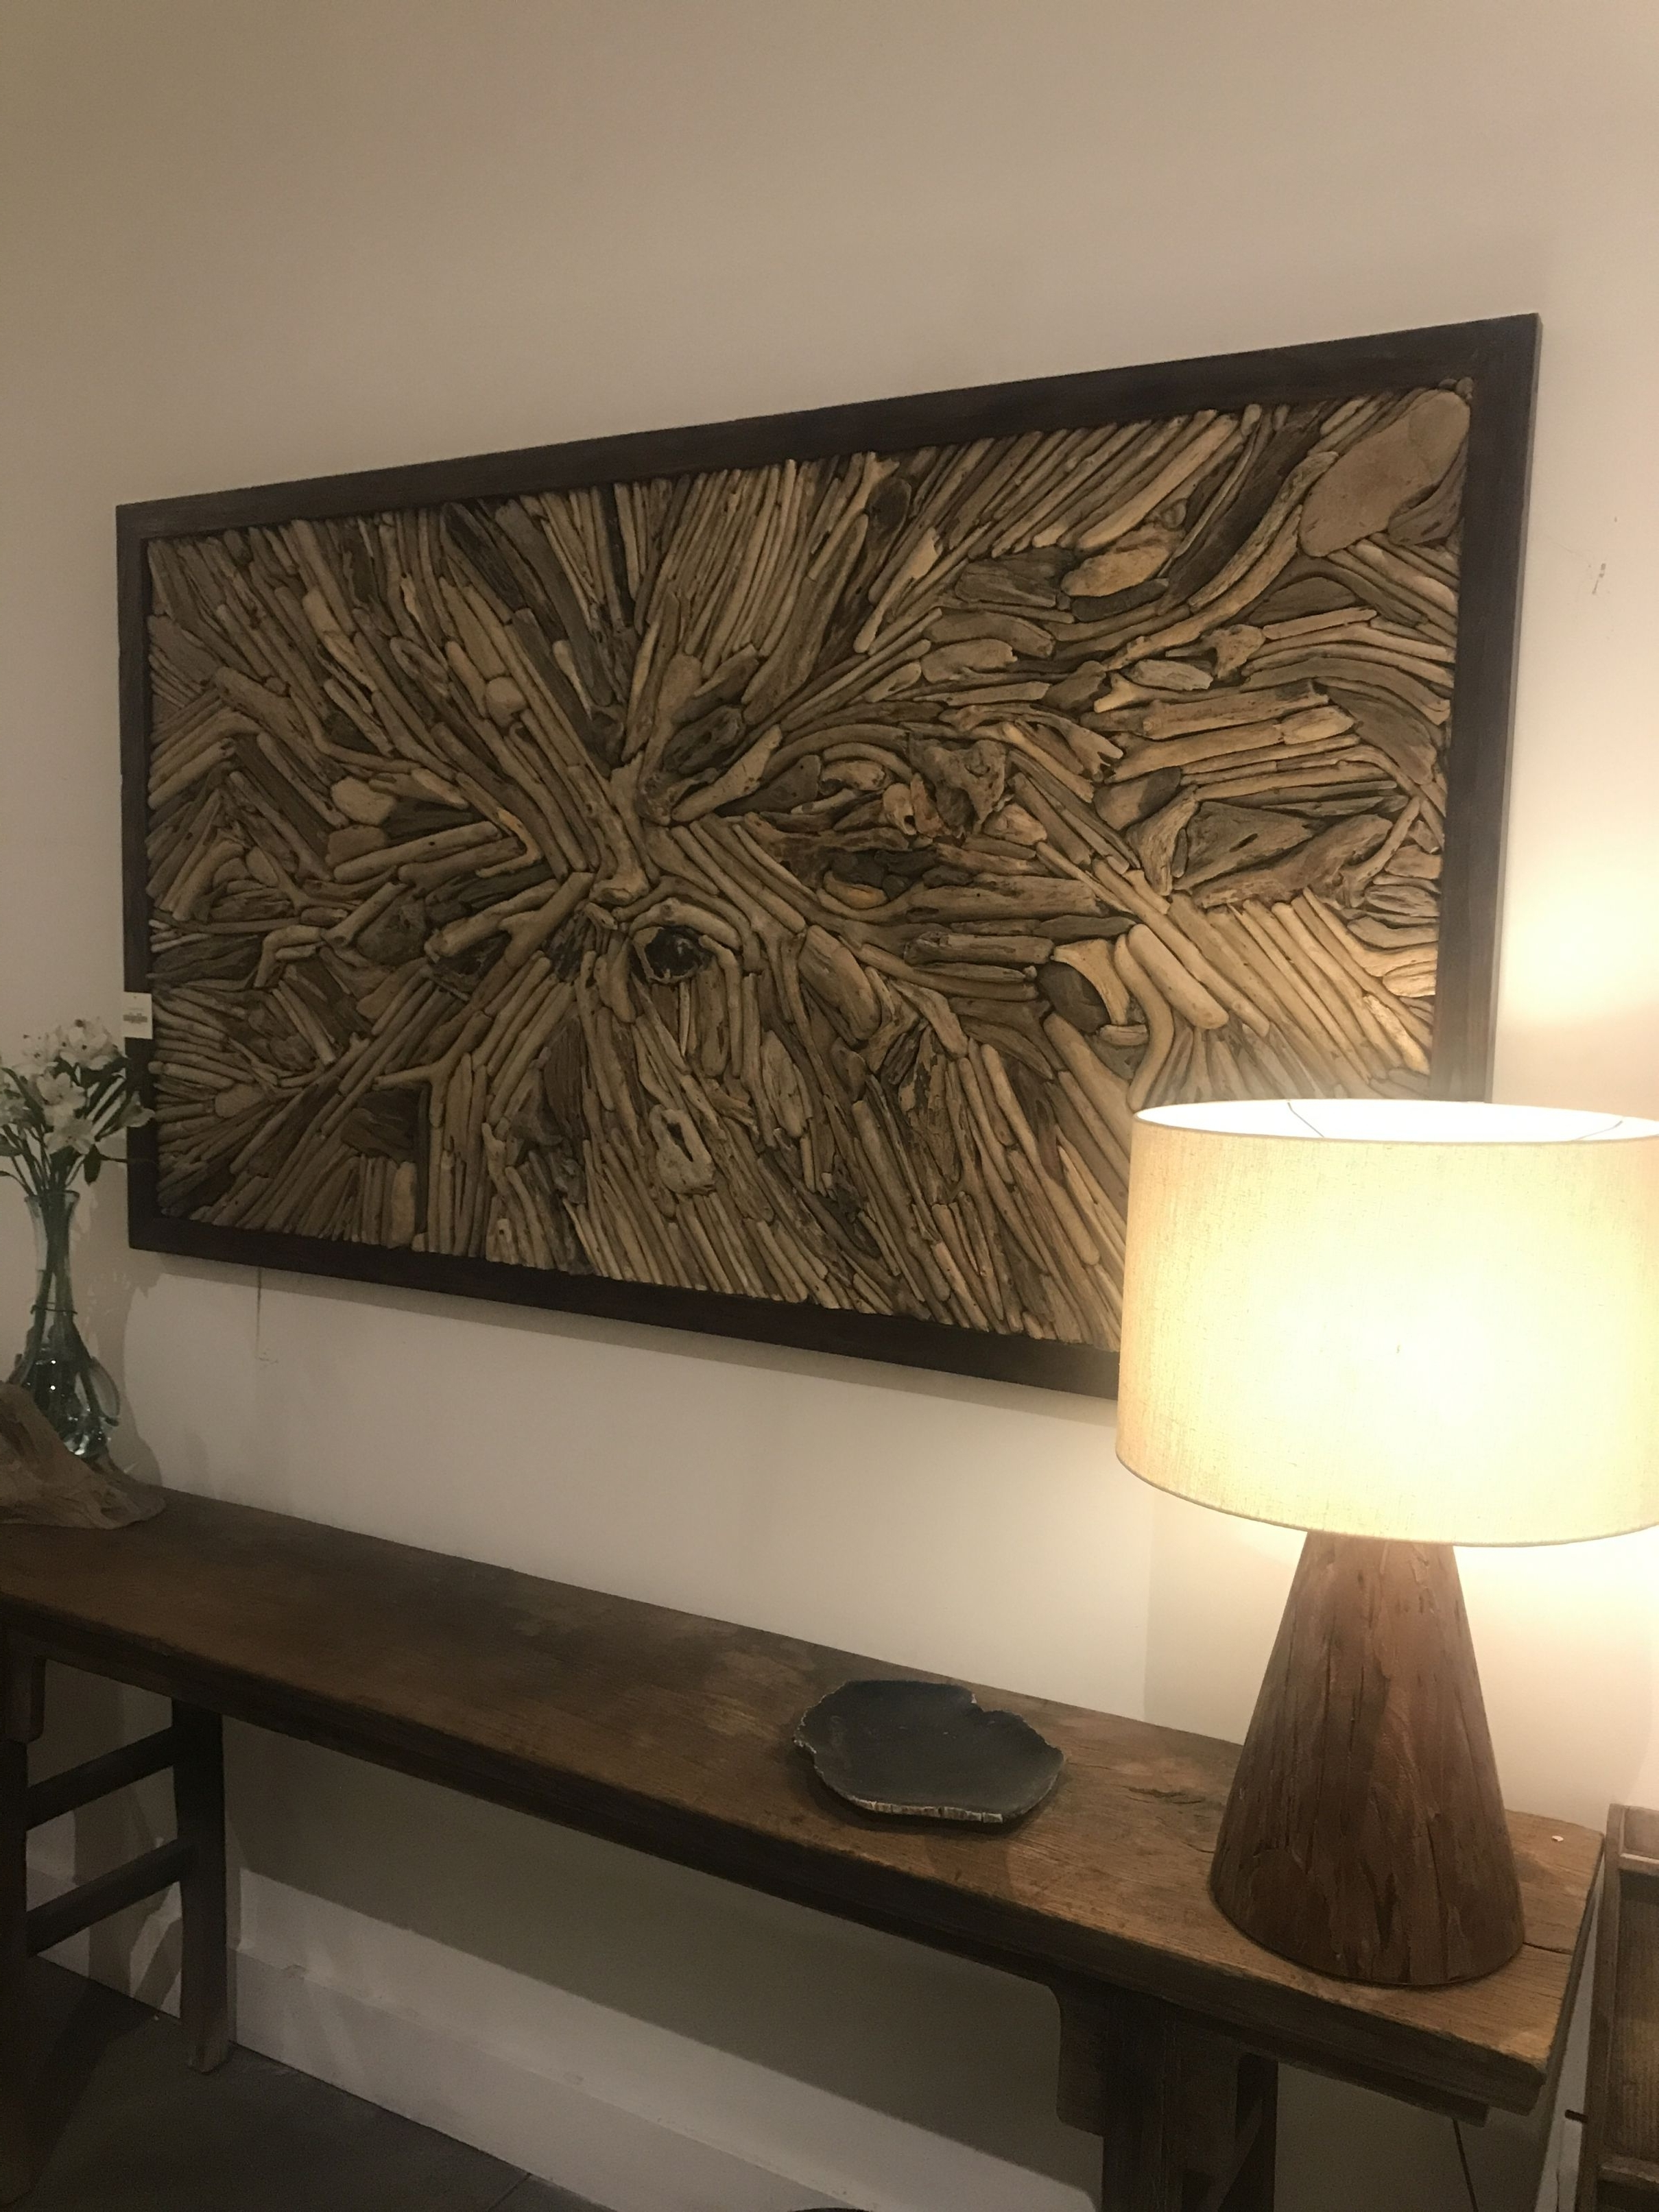 Driftwood Wall Art – Mecox Gardens For Most Current Driftwood Wall Art (Gallery 1 of 15)